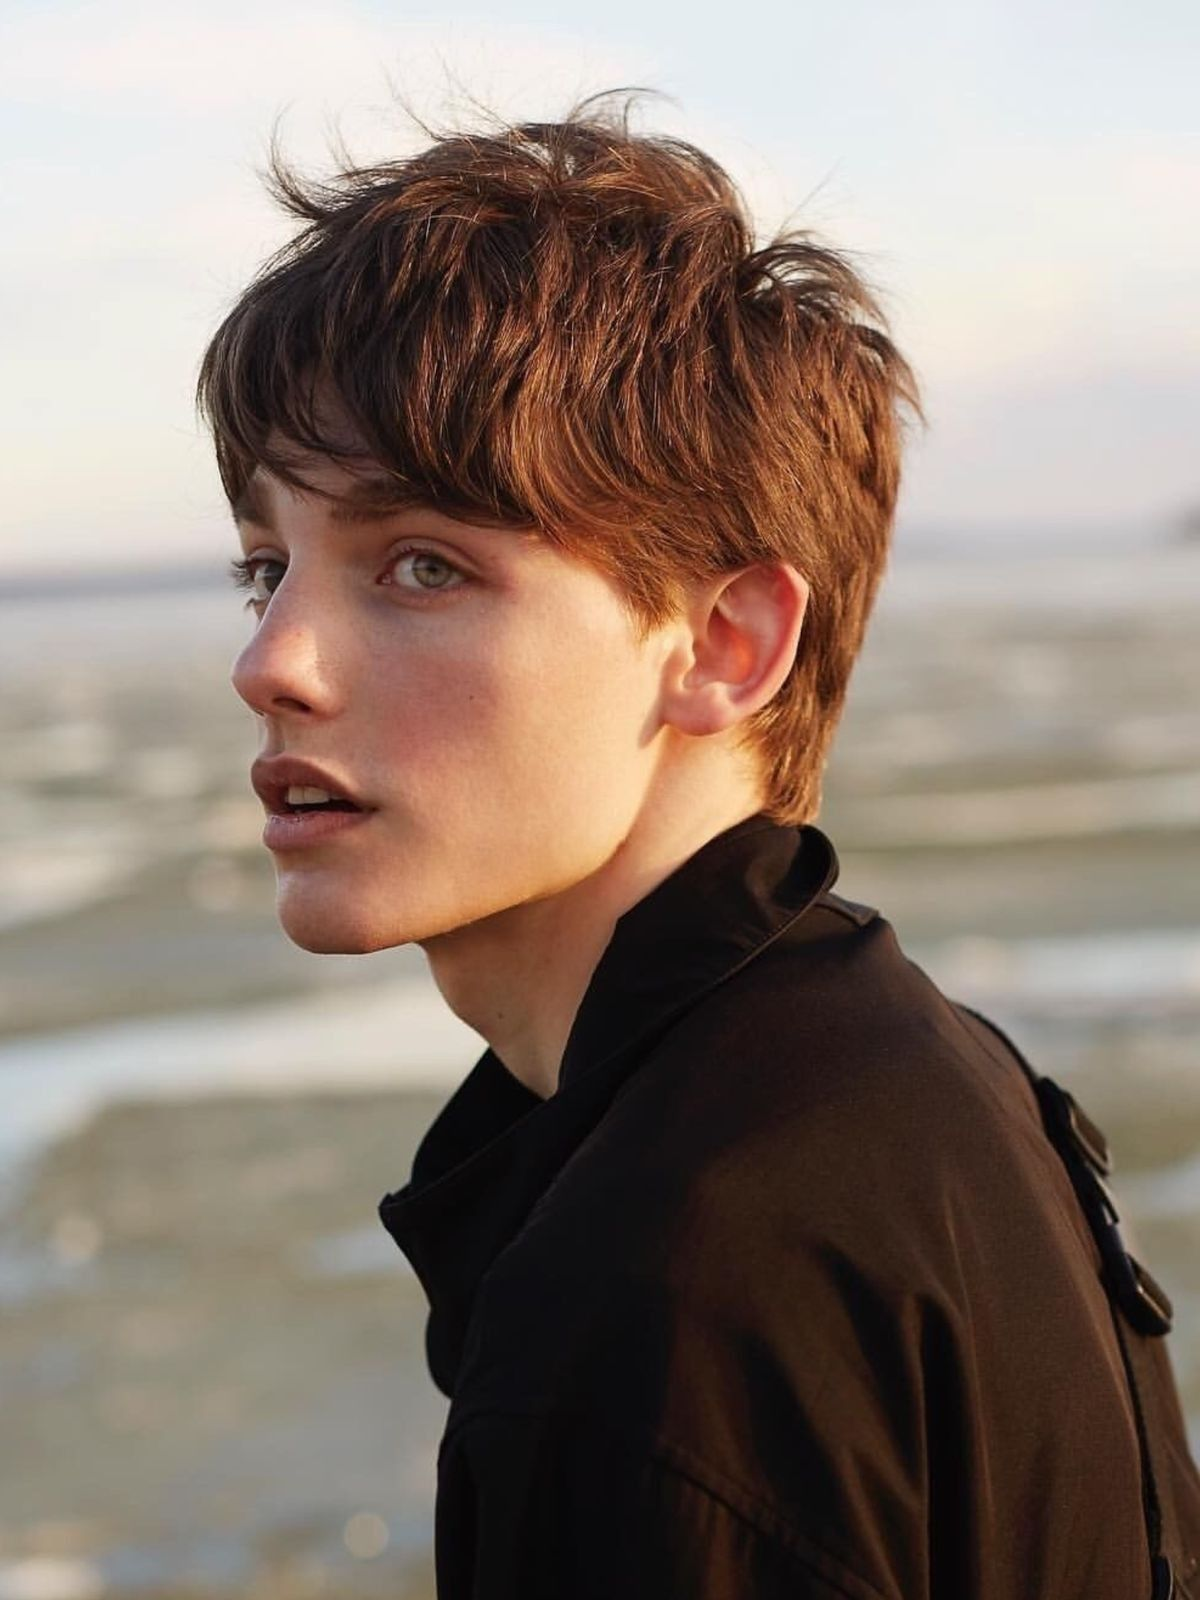 Pin by Meggie Hall on people: men   Aesthetic people